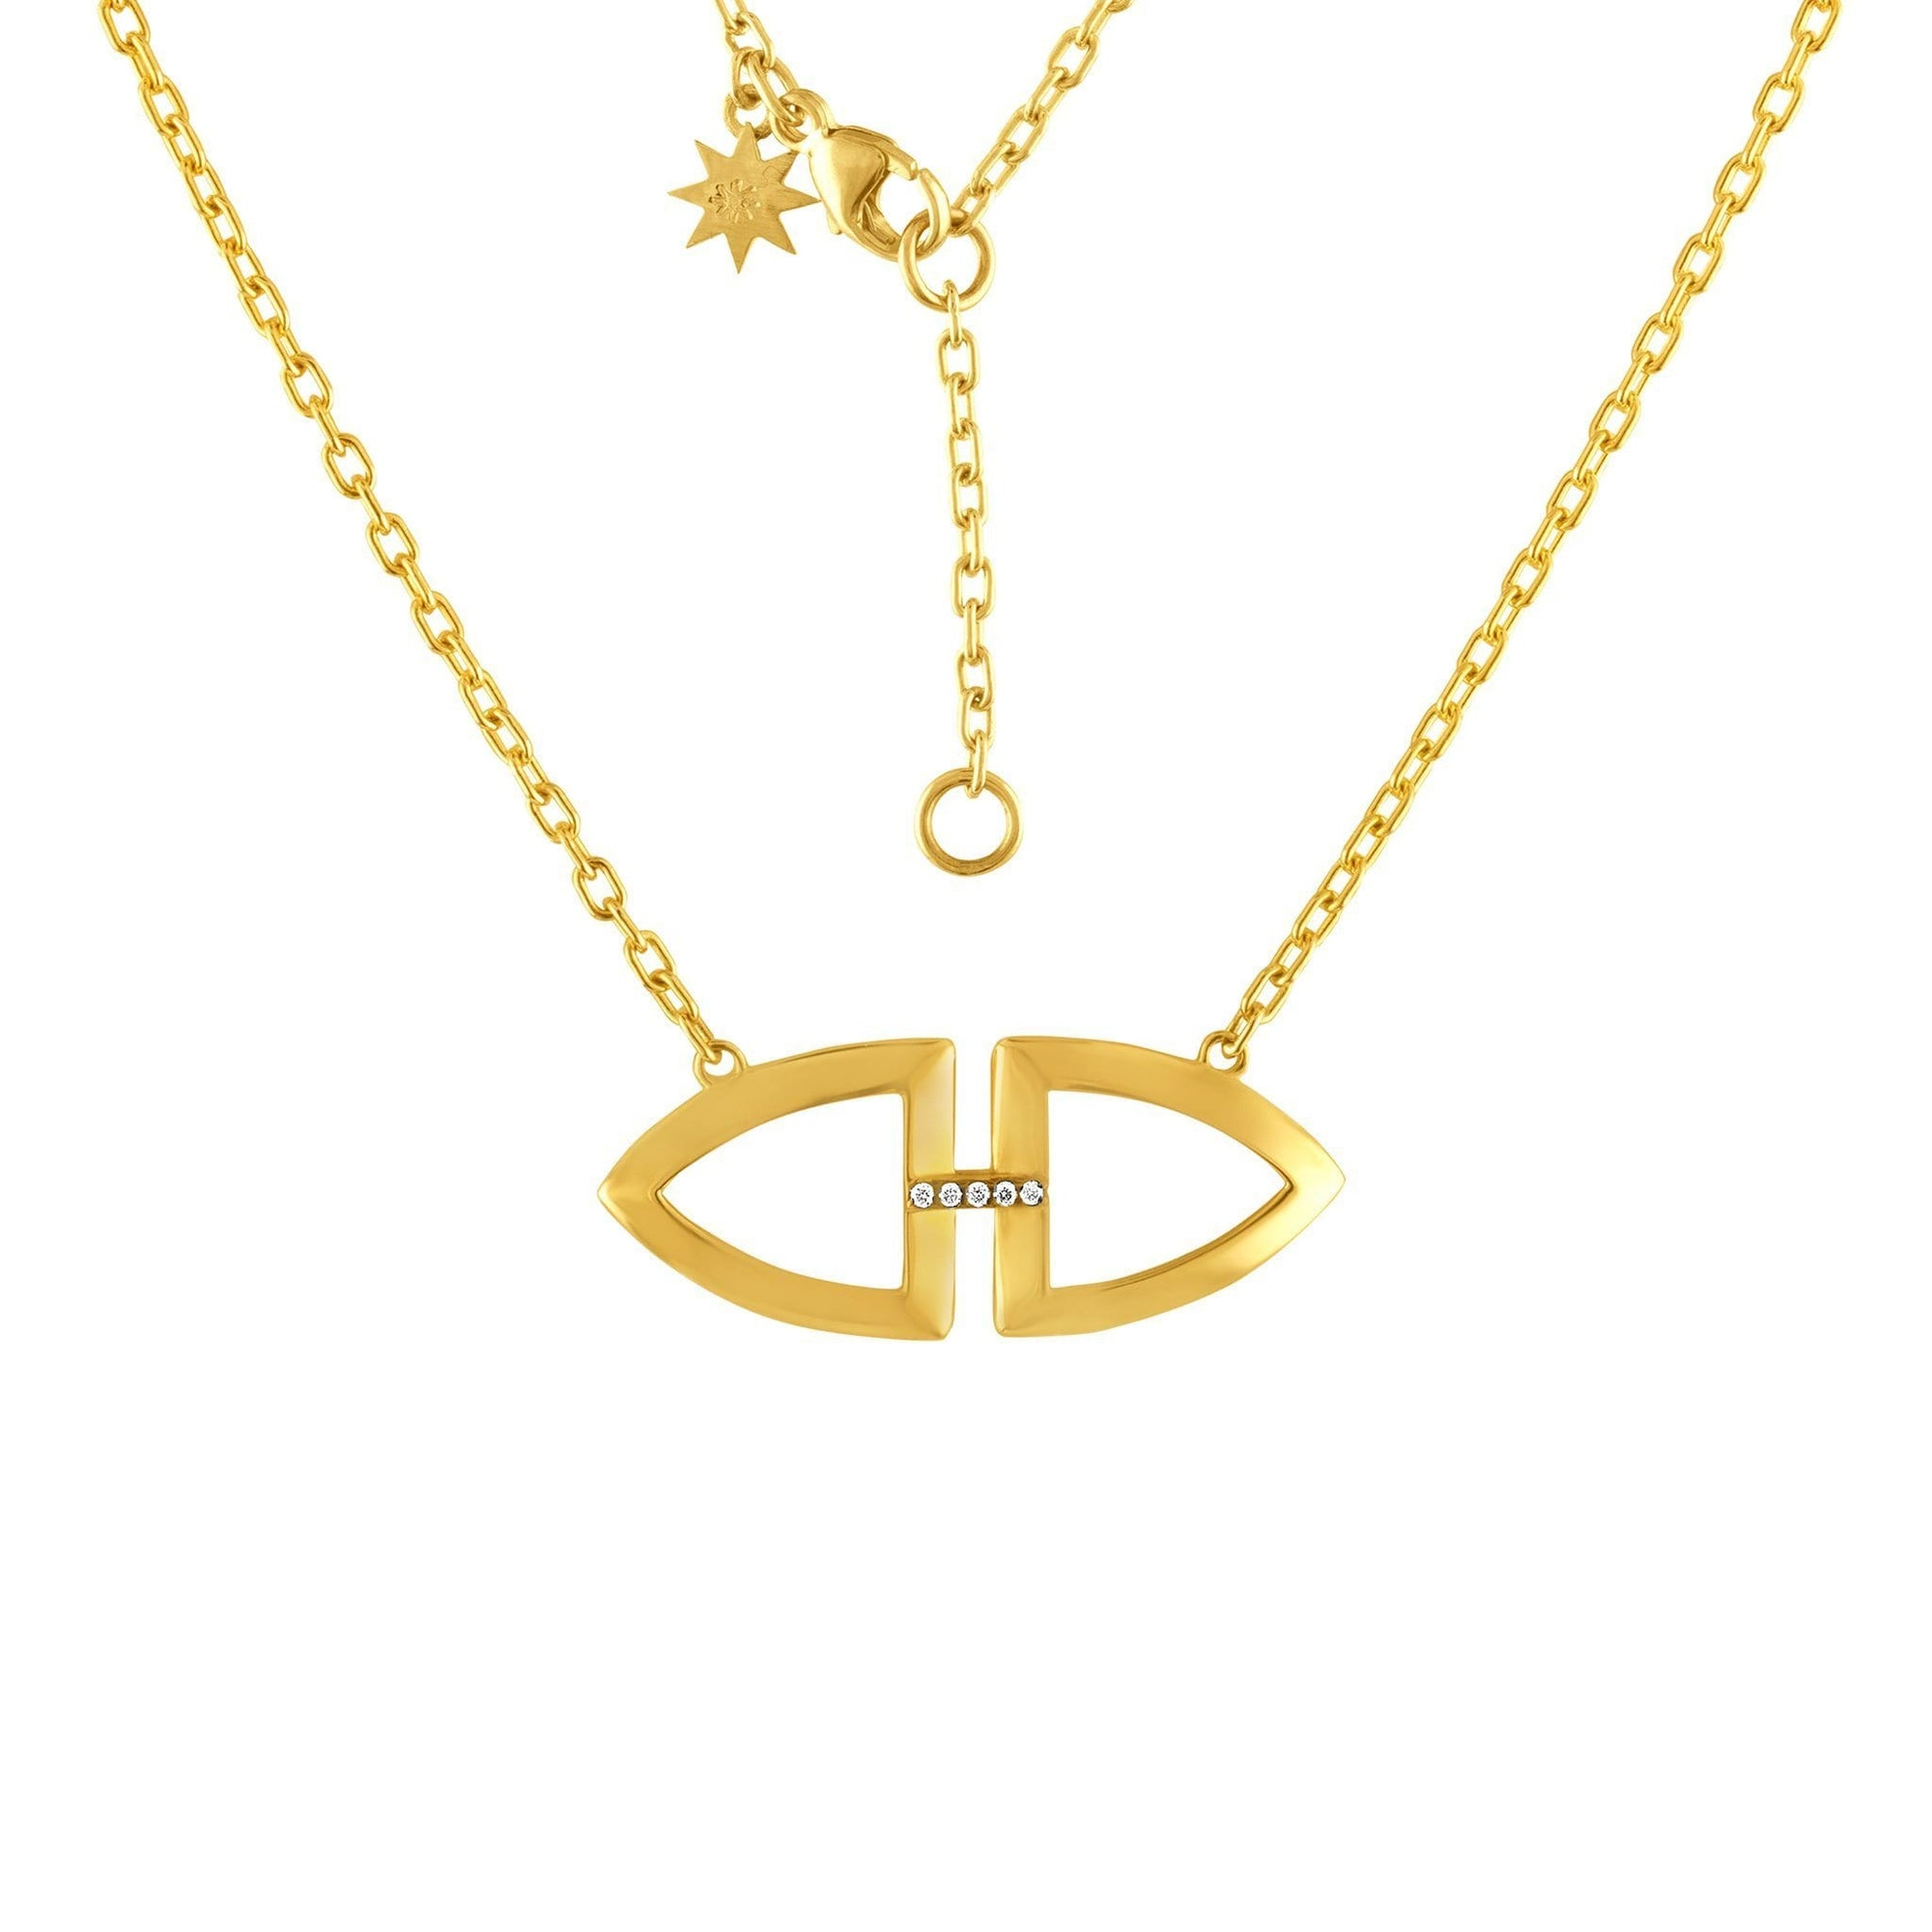 Arch Mini Pendant Necklace: 14k Gold, Diamonds